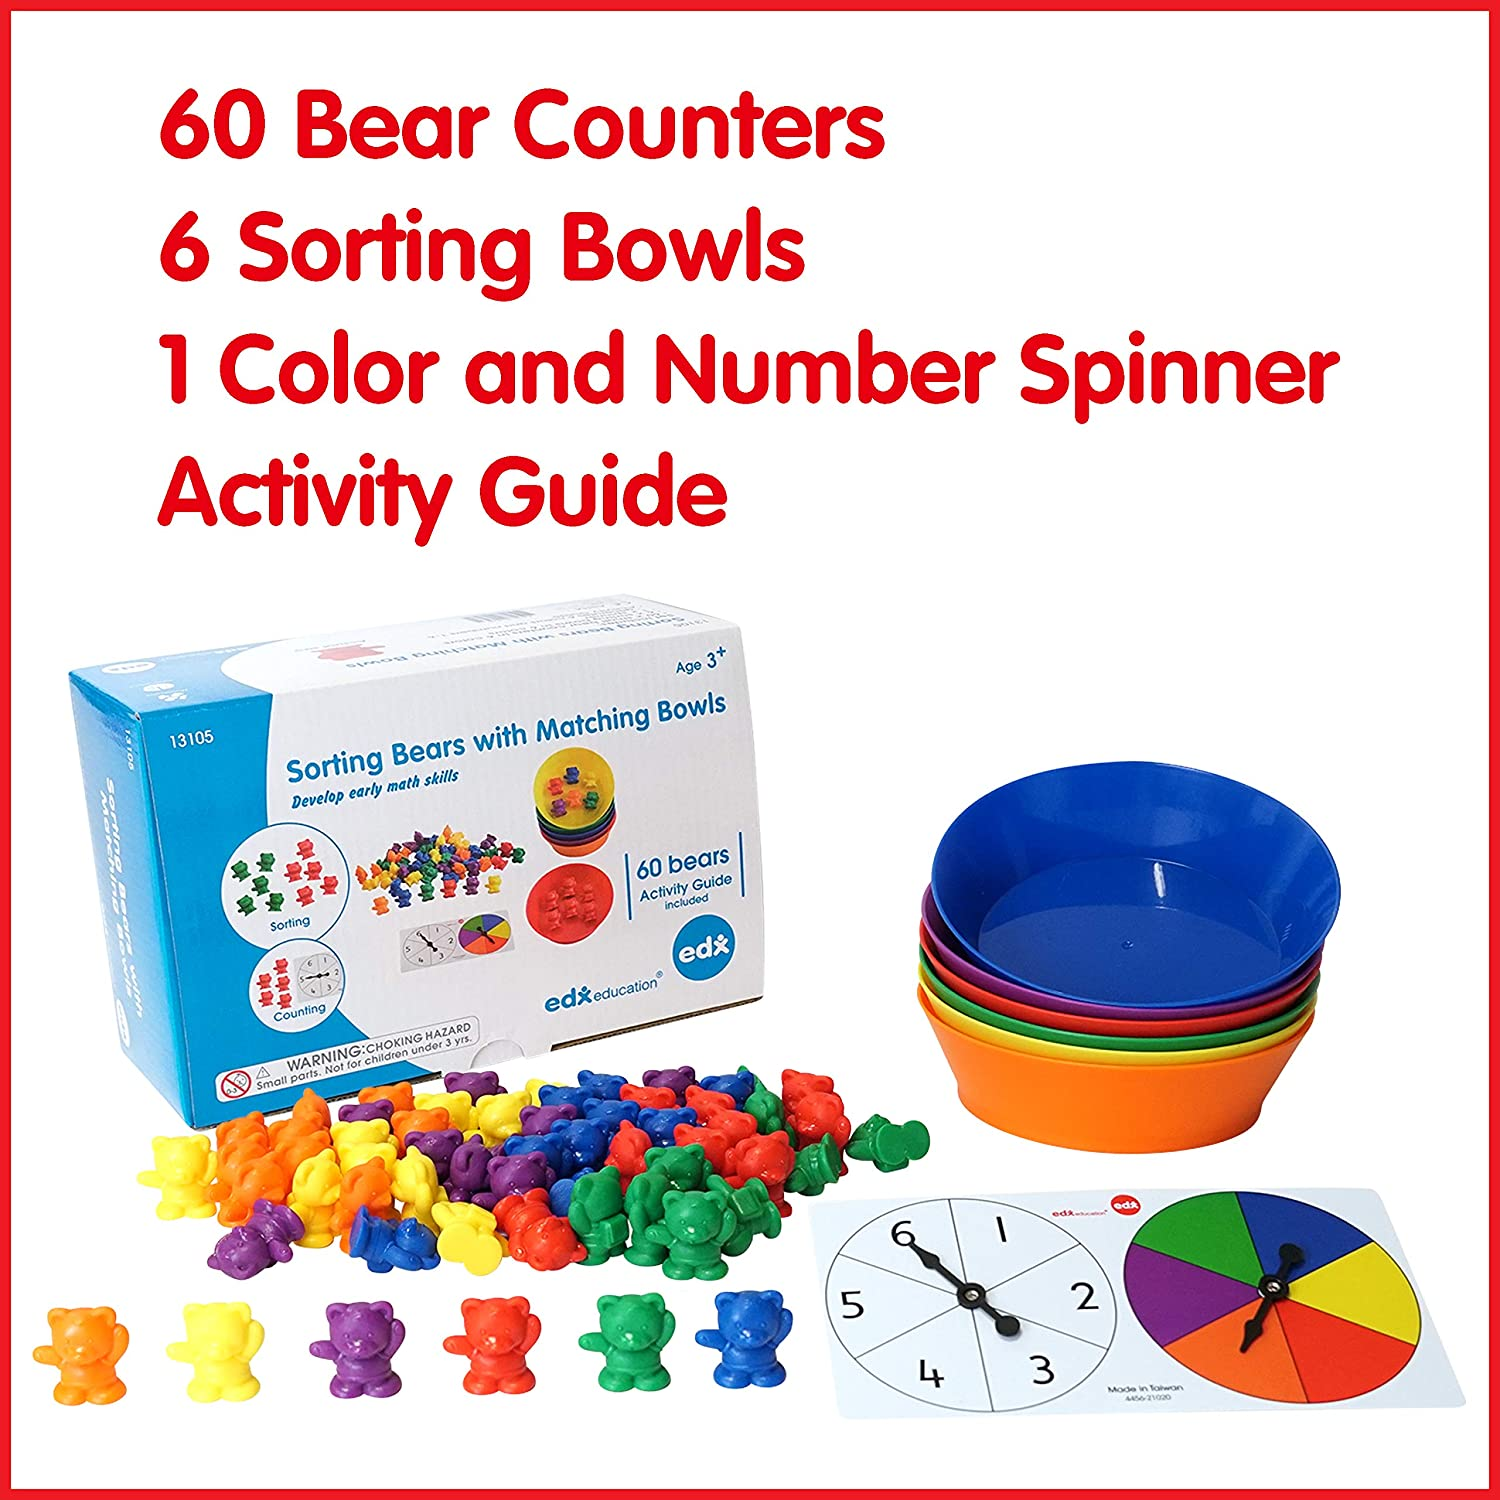 Counting bears with bowl